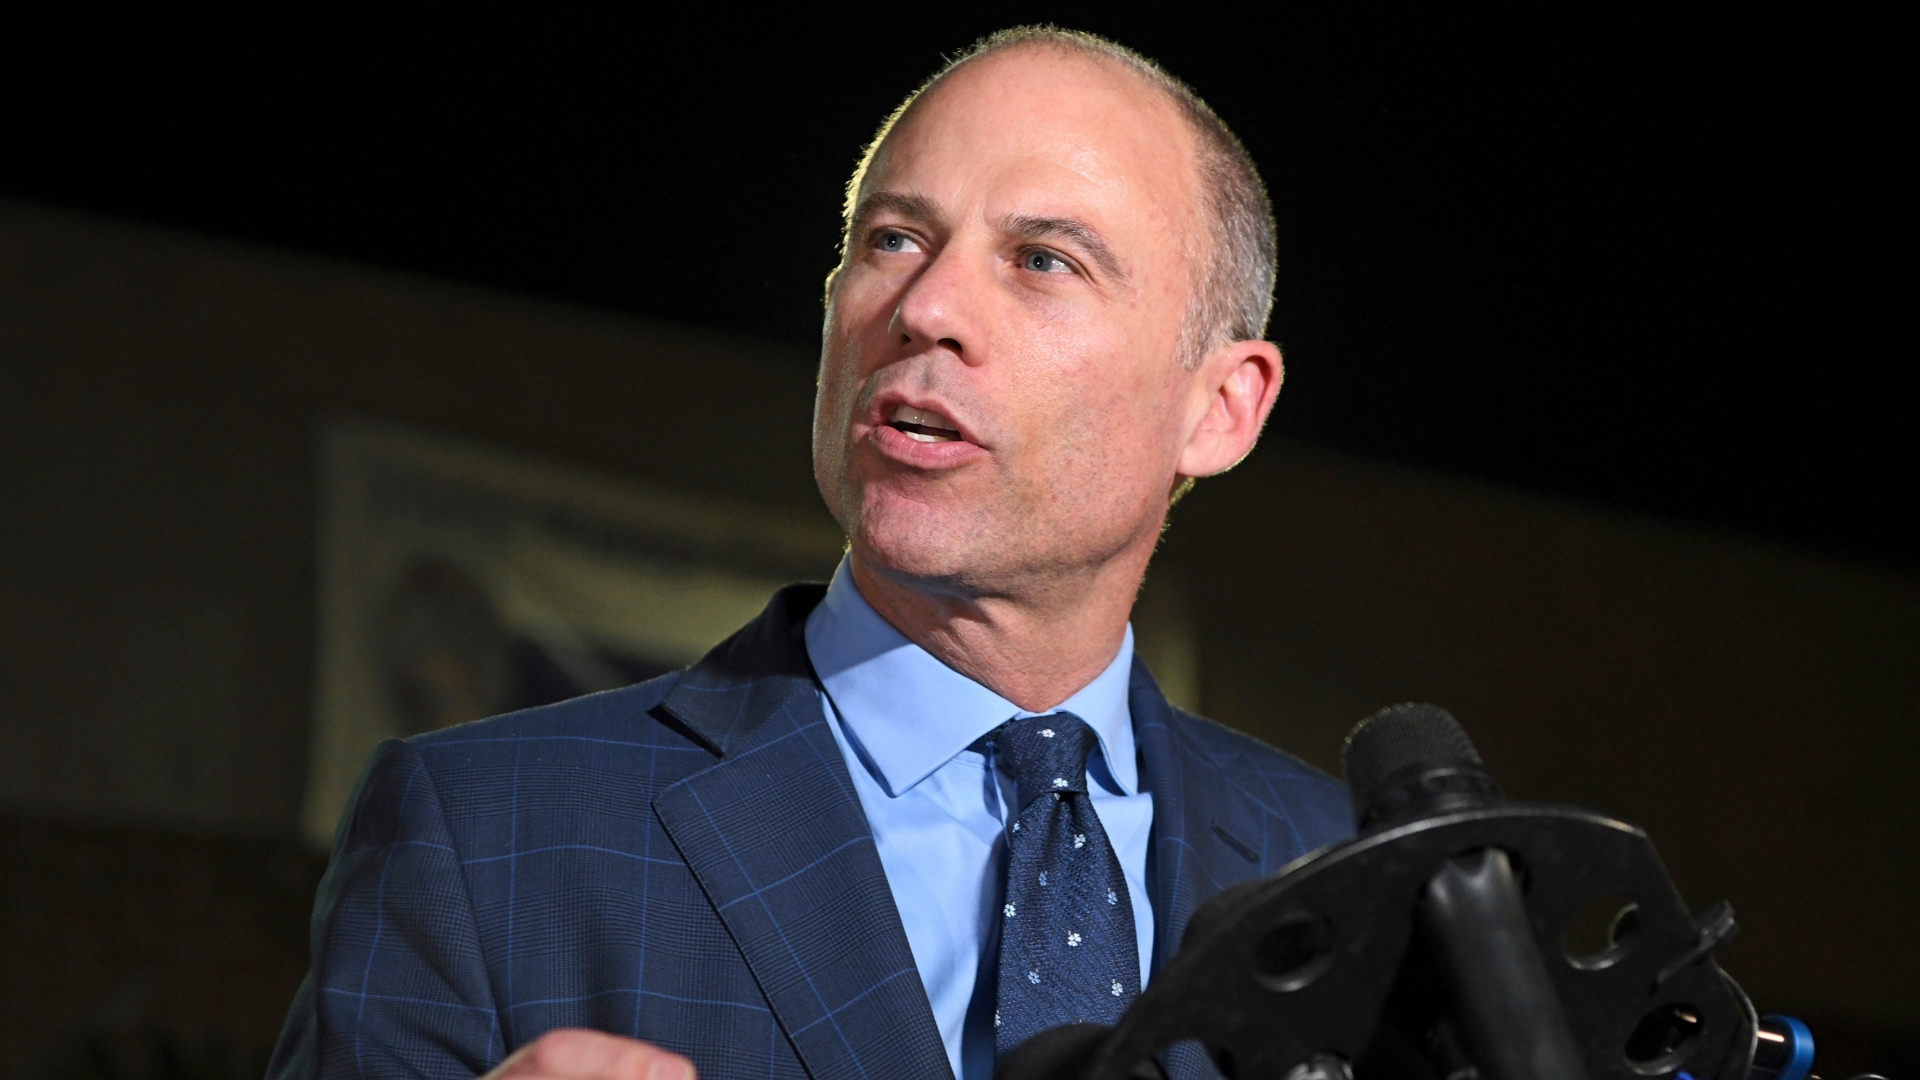 Michael Avenatti is accused of trying to extort Nike